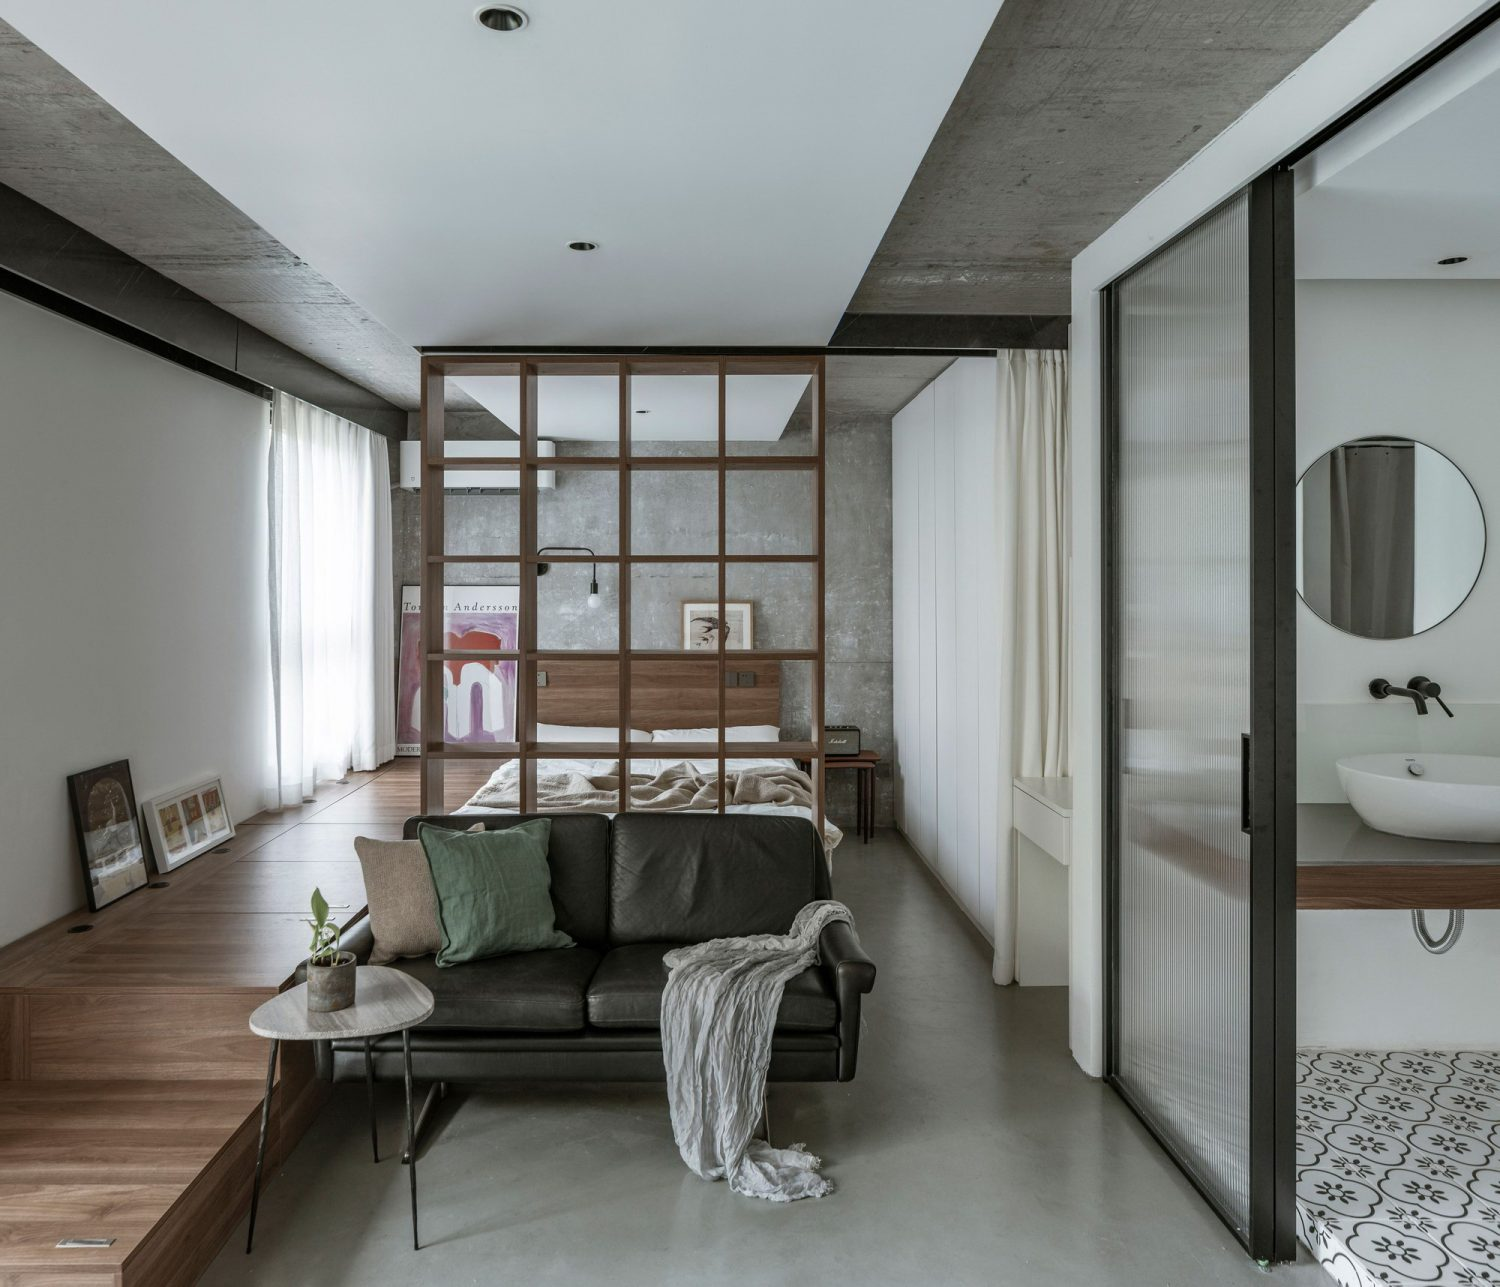 Suli House by Luo Xiuda